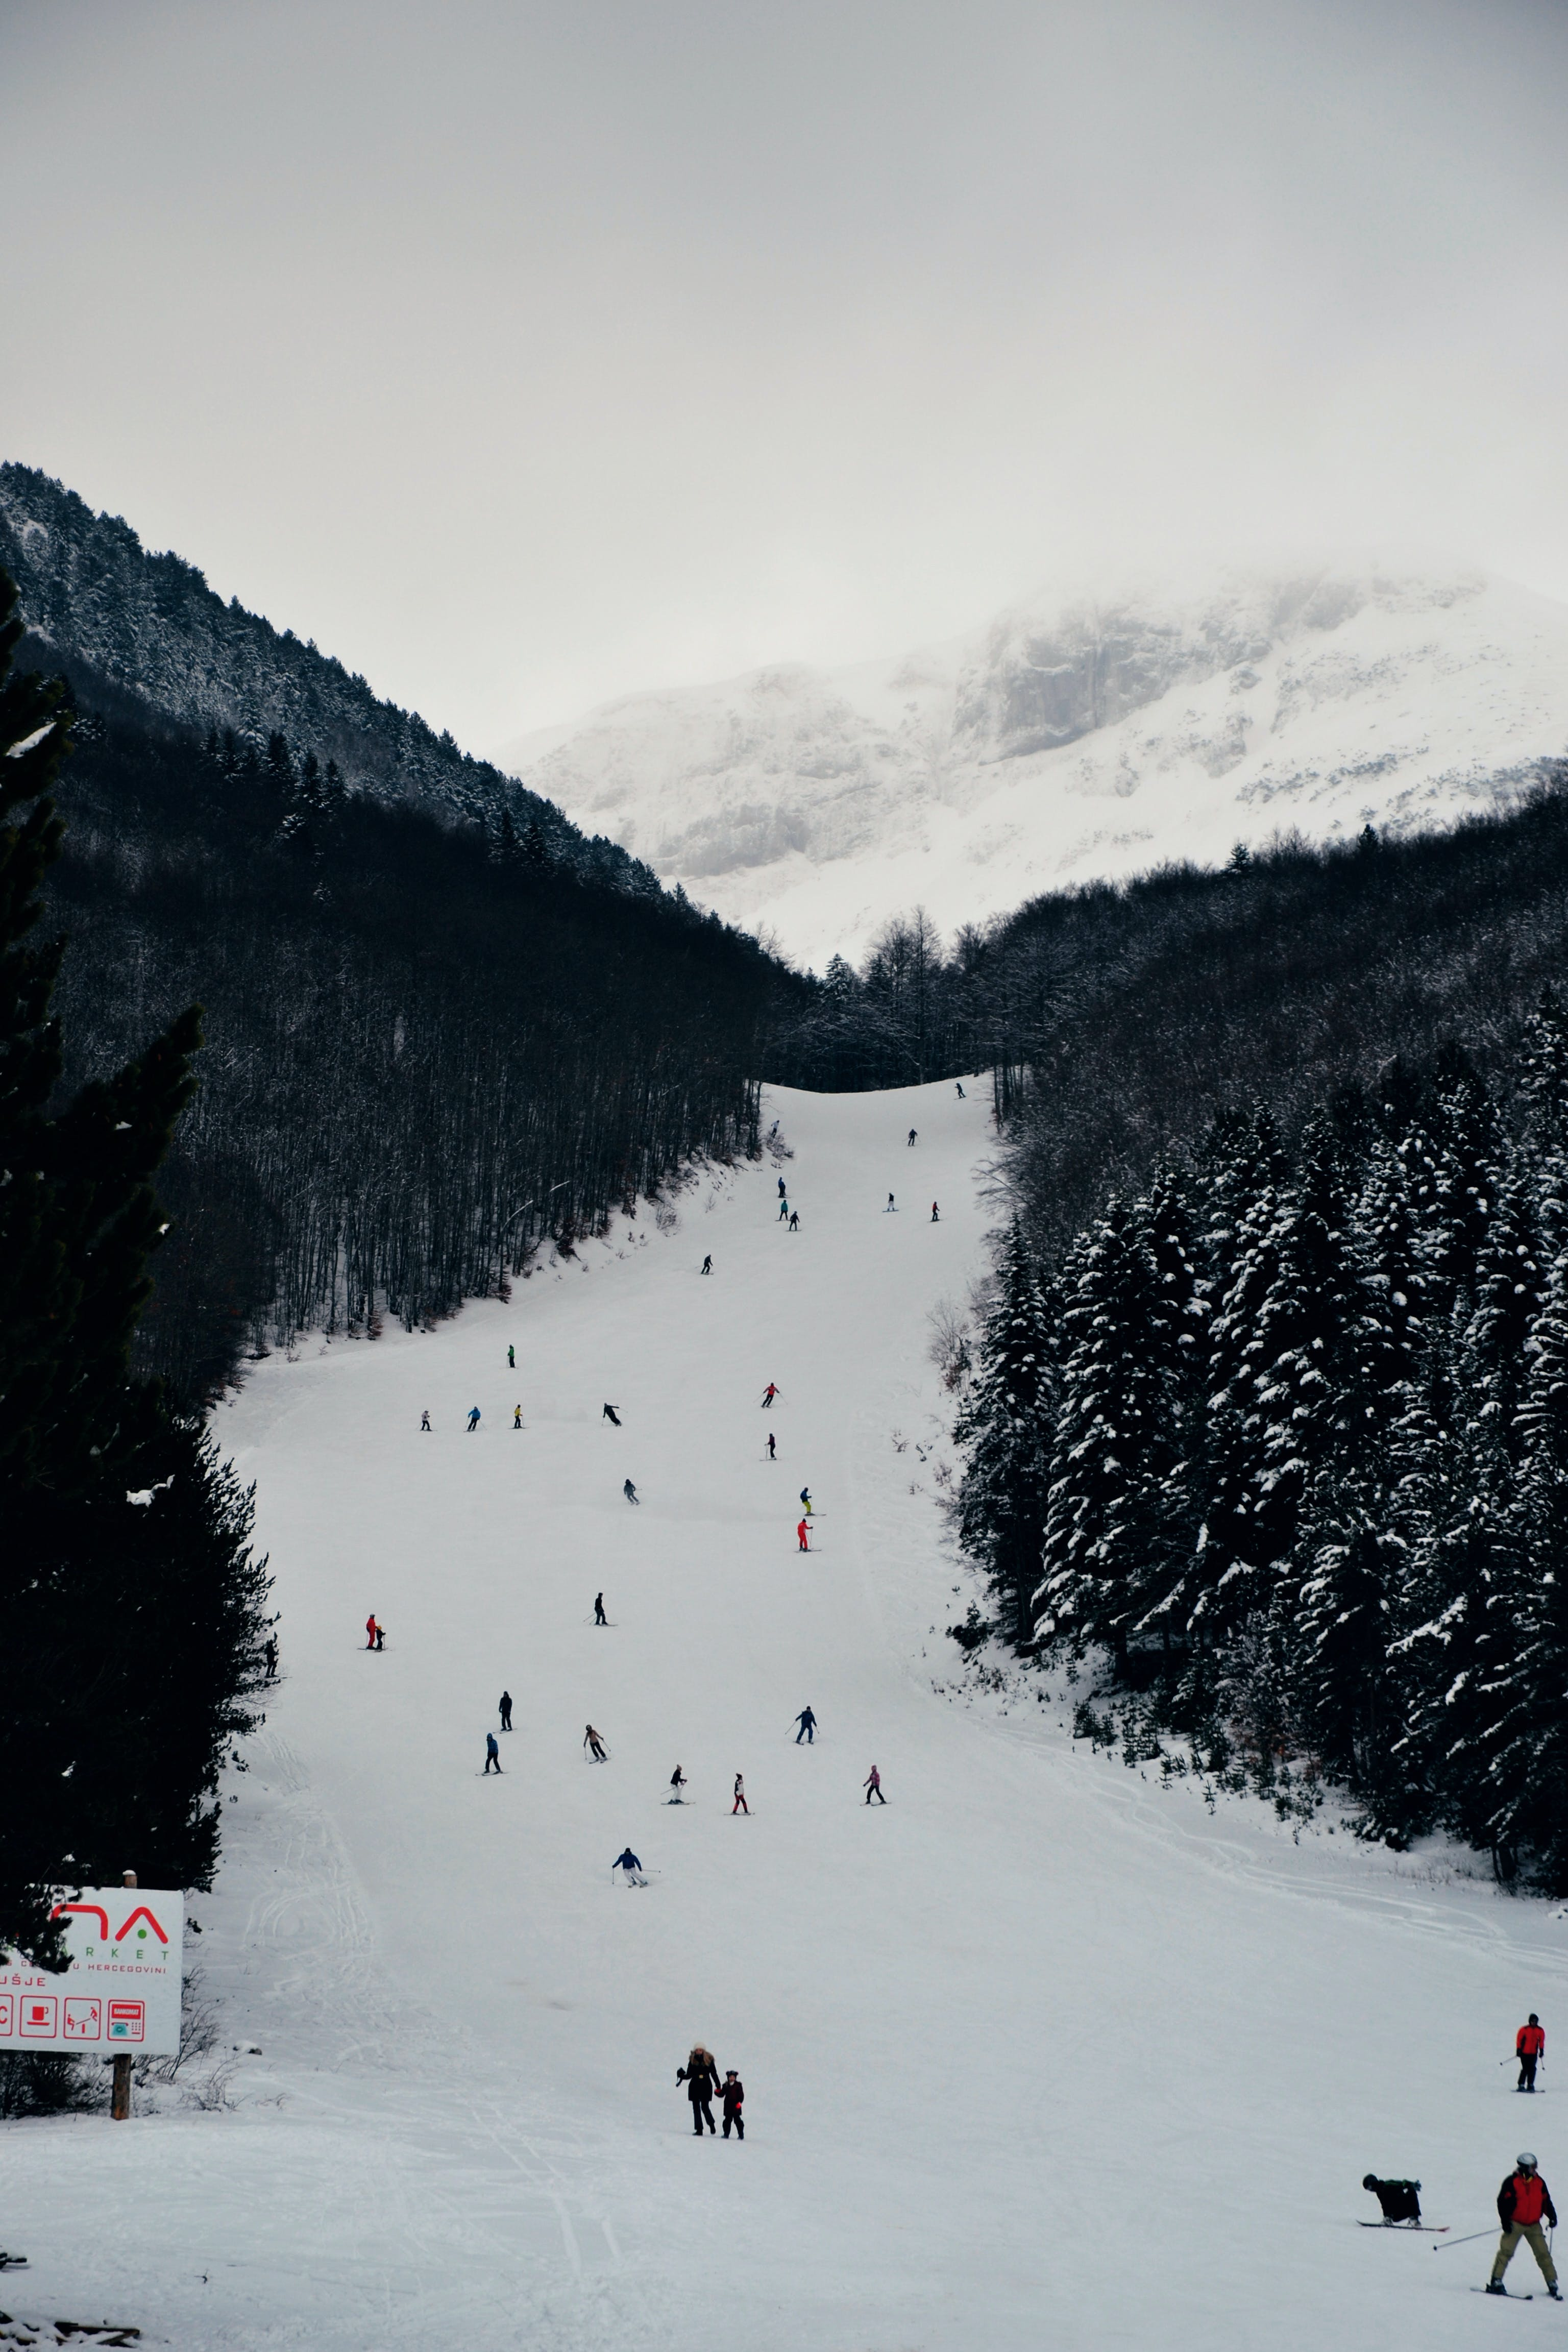 Snowboard and Ski Lanscape